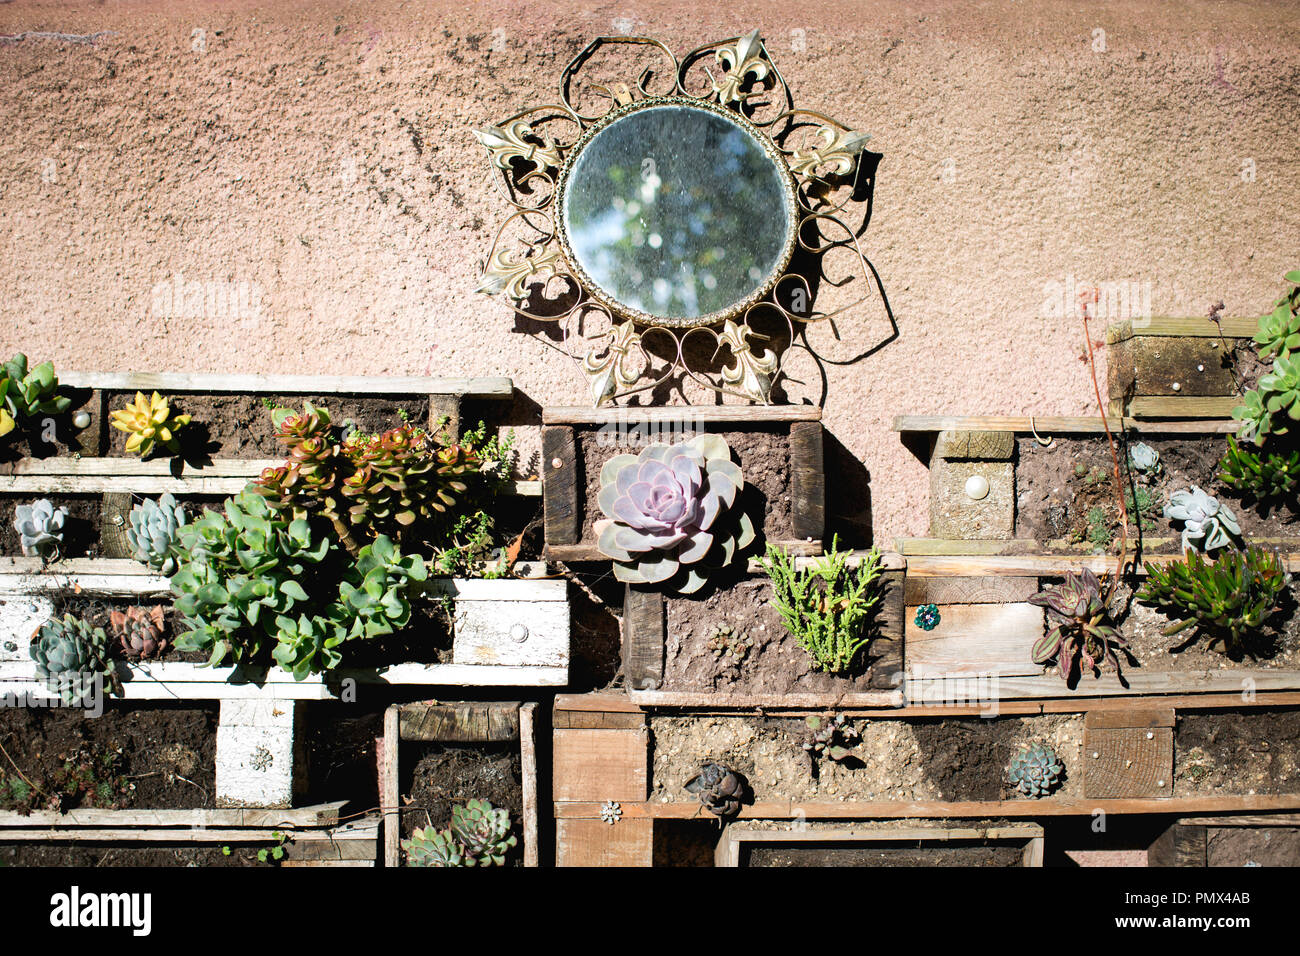 A homemade living wall made from boxes and crates stacked together to create an unique urban garden with succulents and alpines and a round mirror - Stock Image